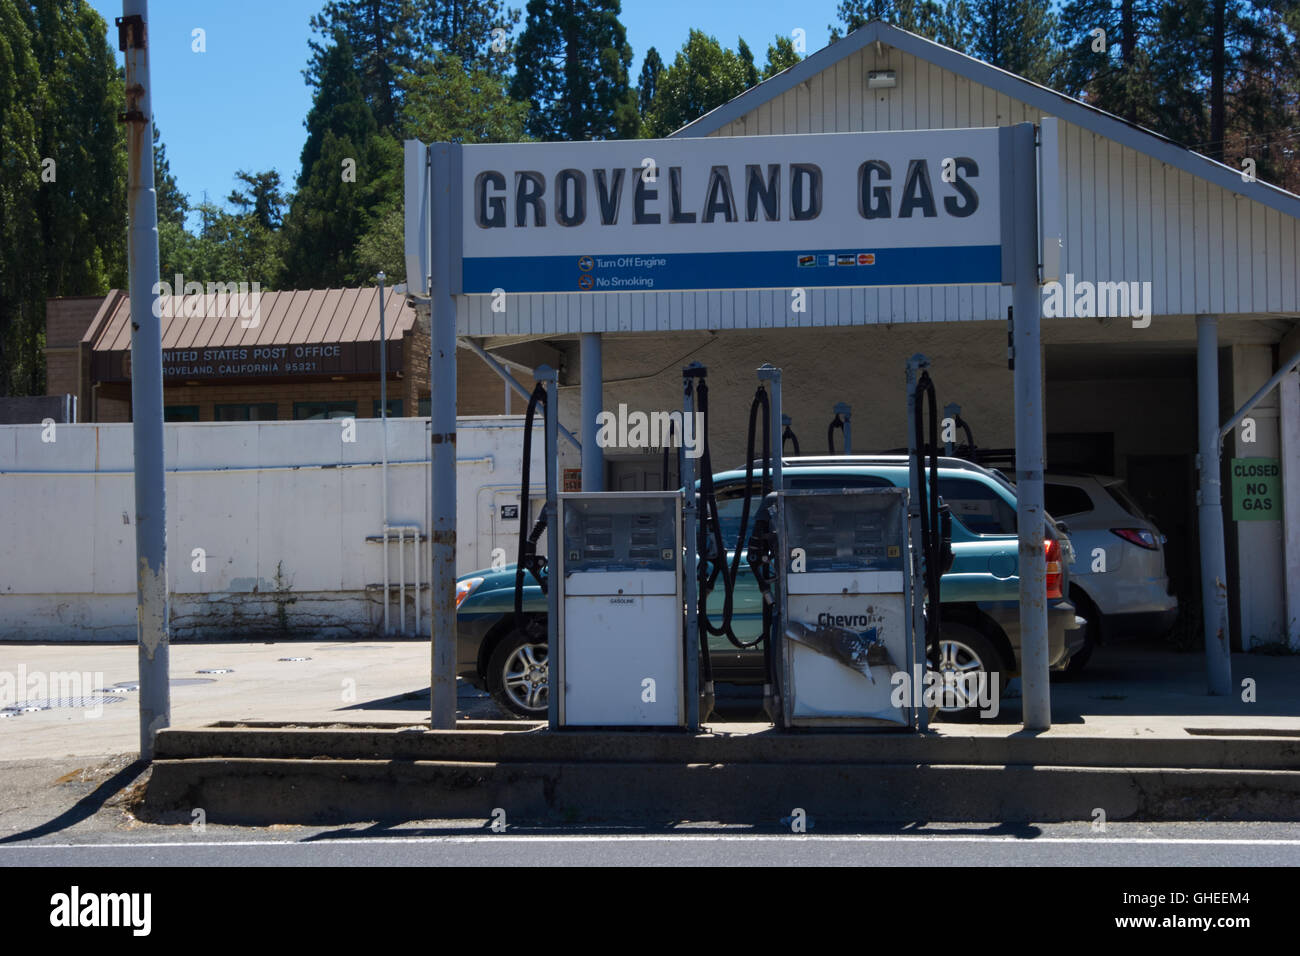 Old Gas Stations In Northern California: Gas California Stock Photos & Gas California Stock Images